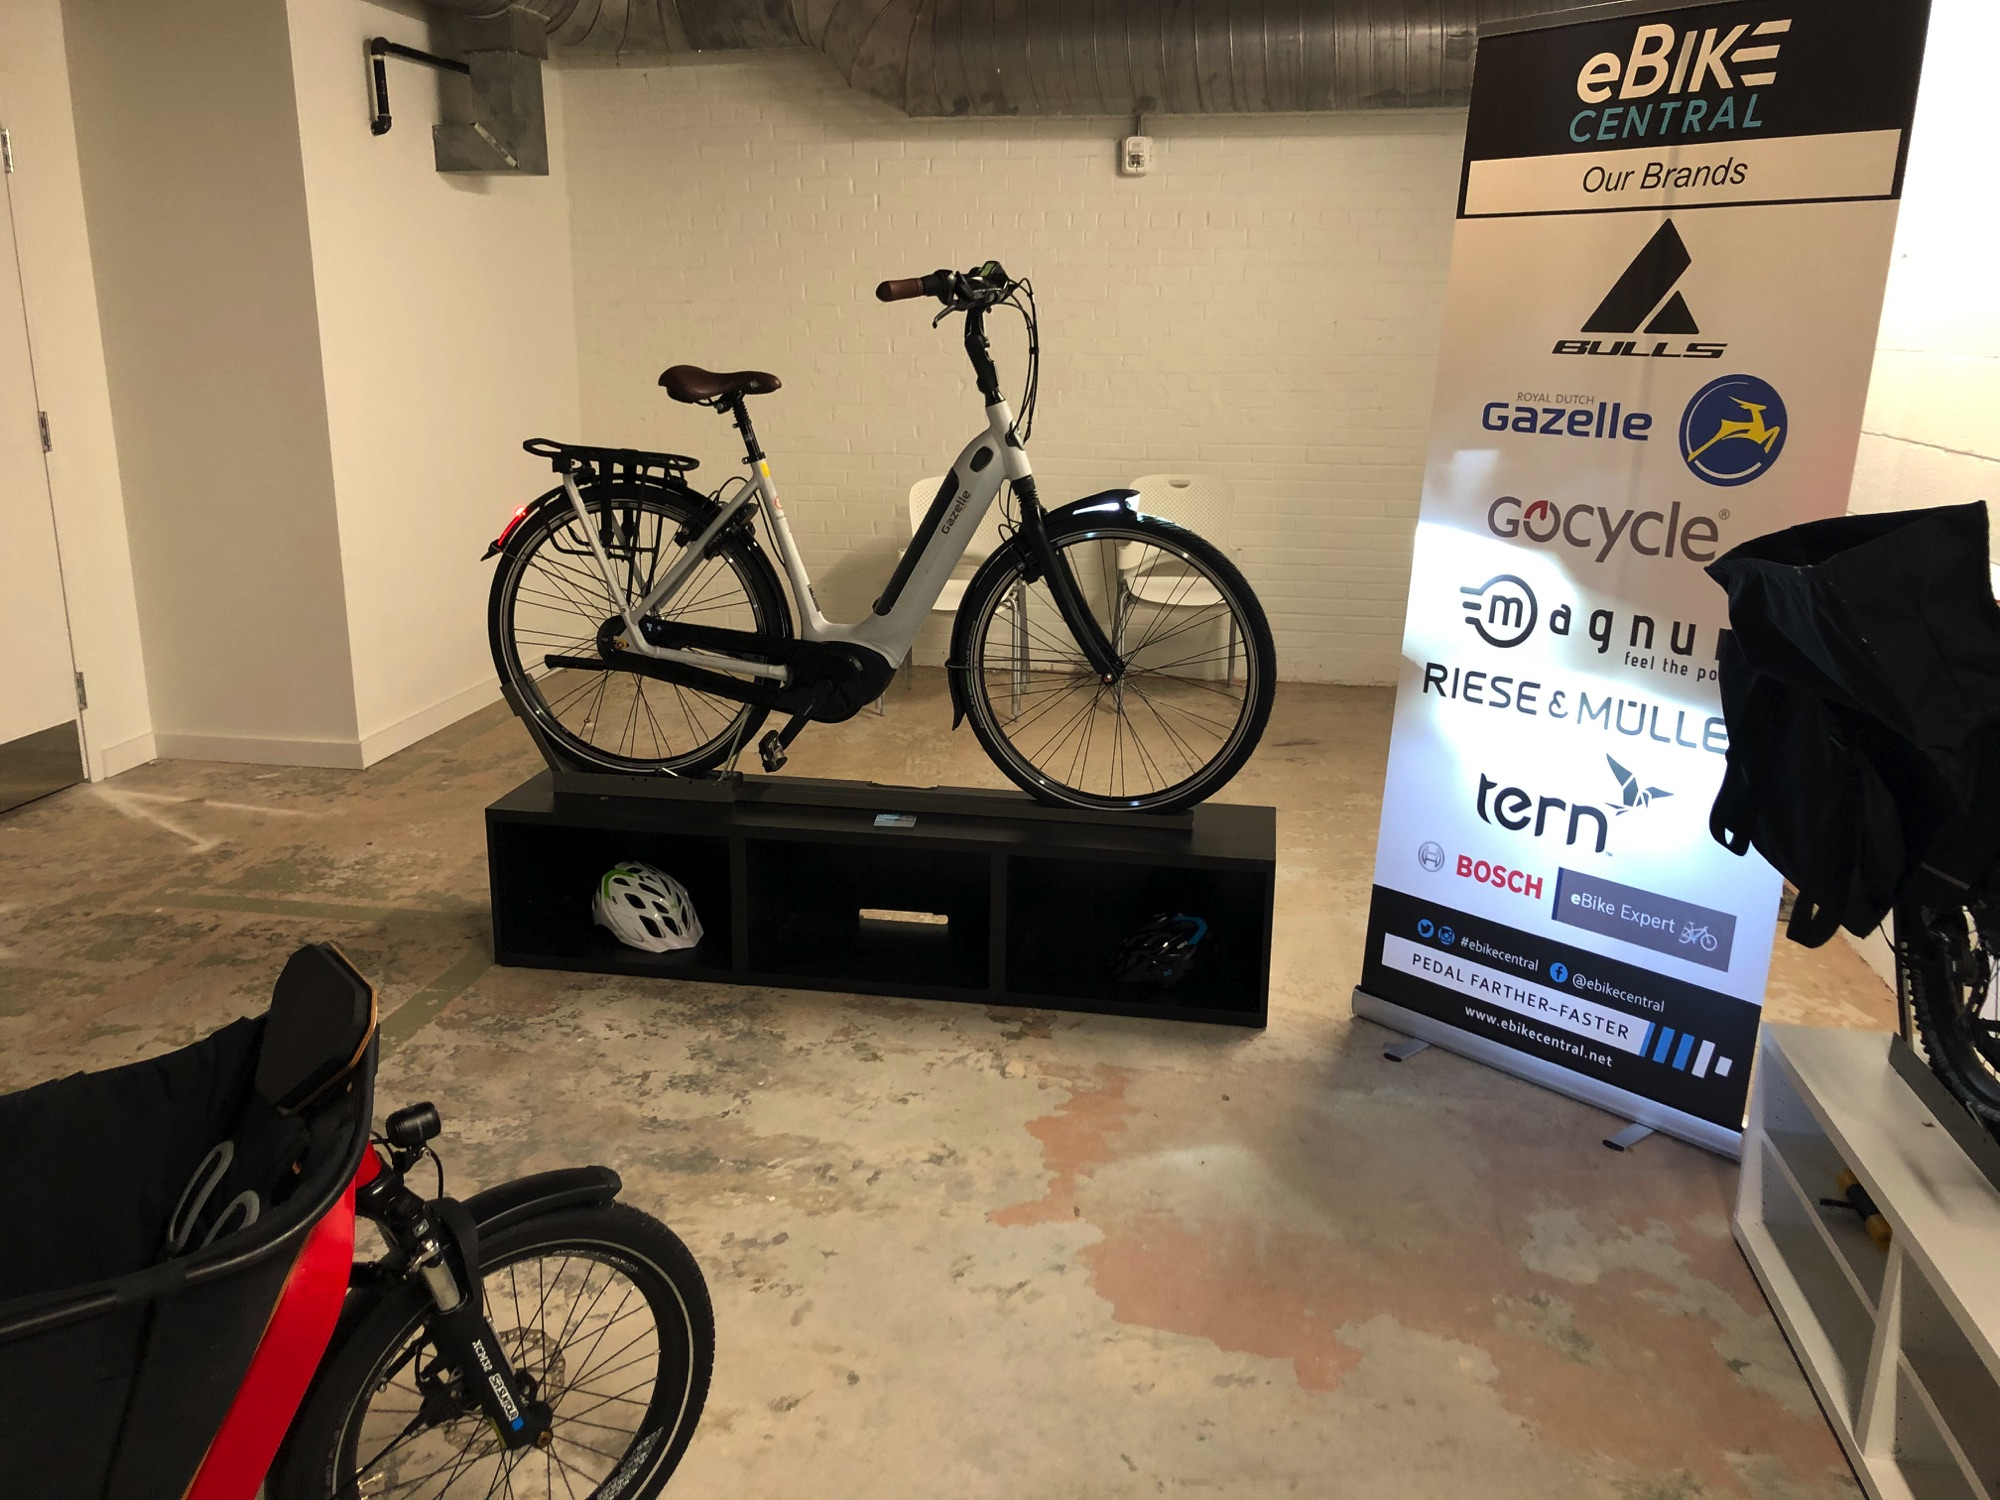 eBike Central and Governor Roy Cooper in Belmont NC